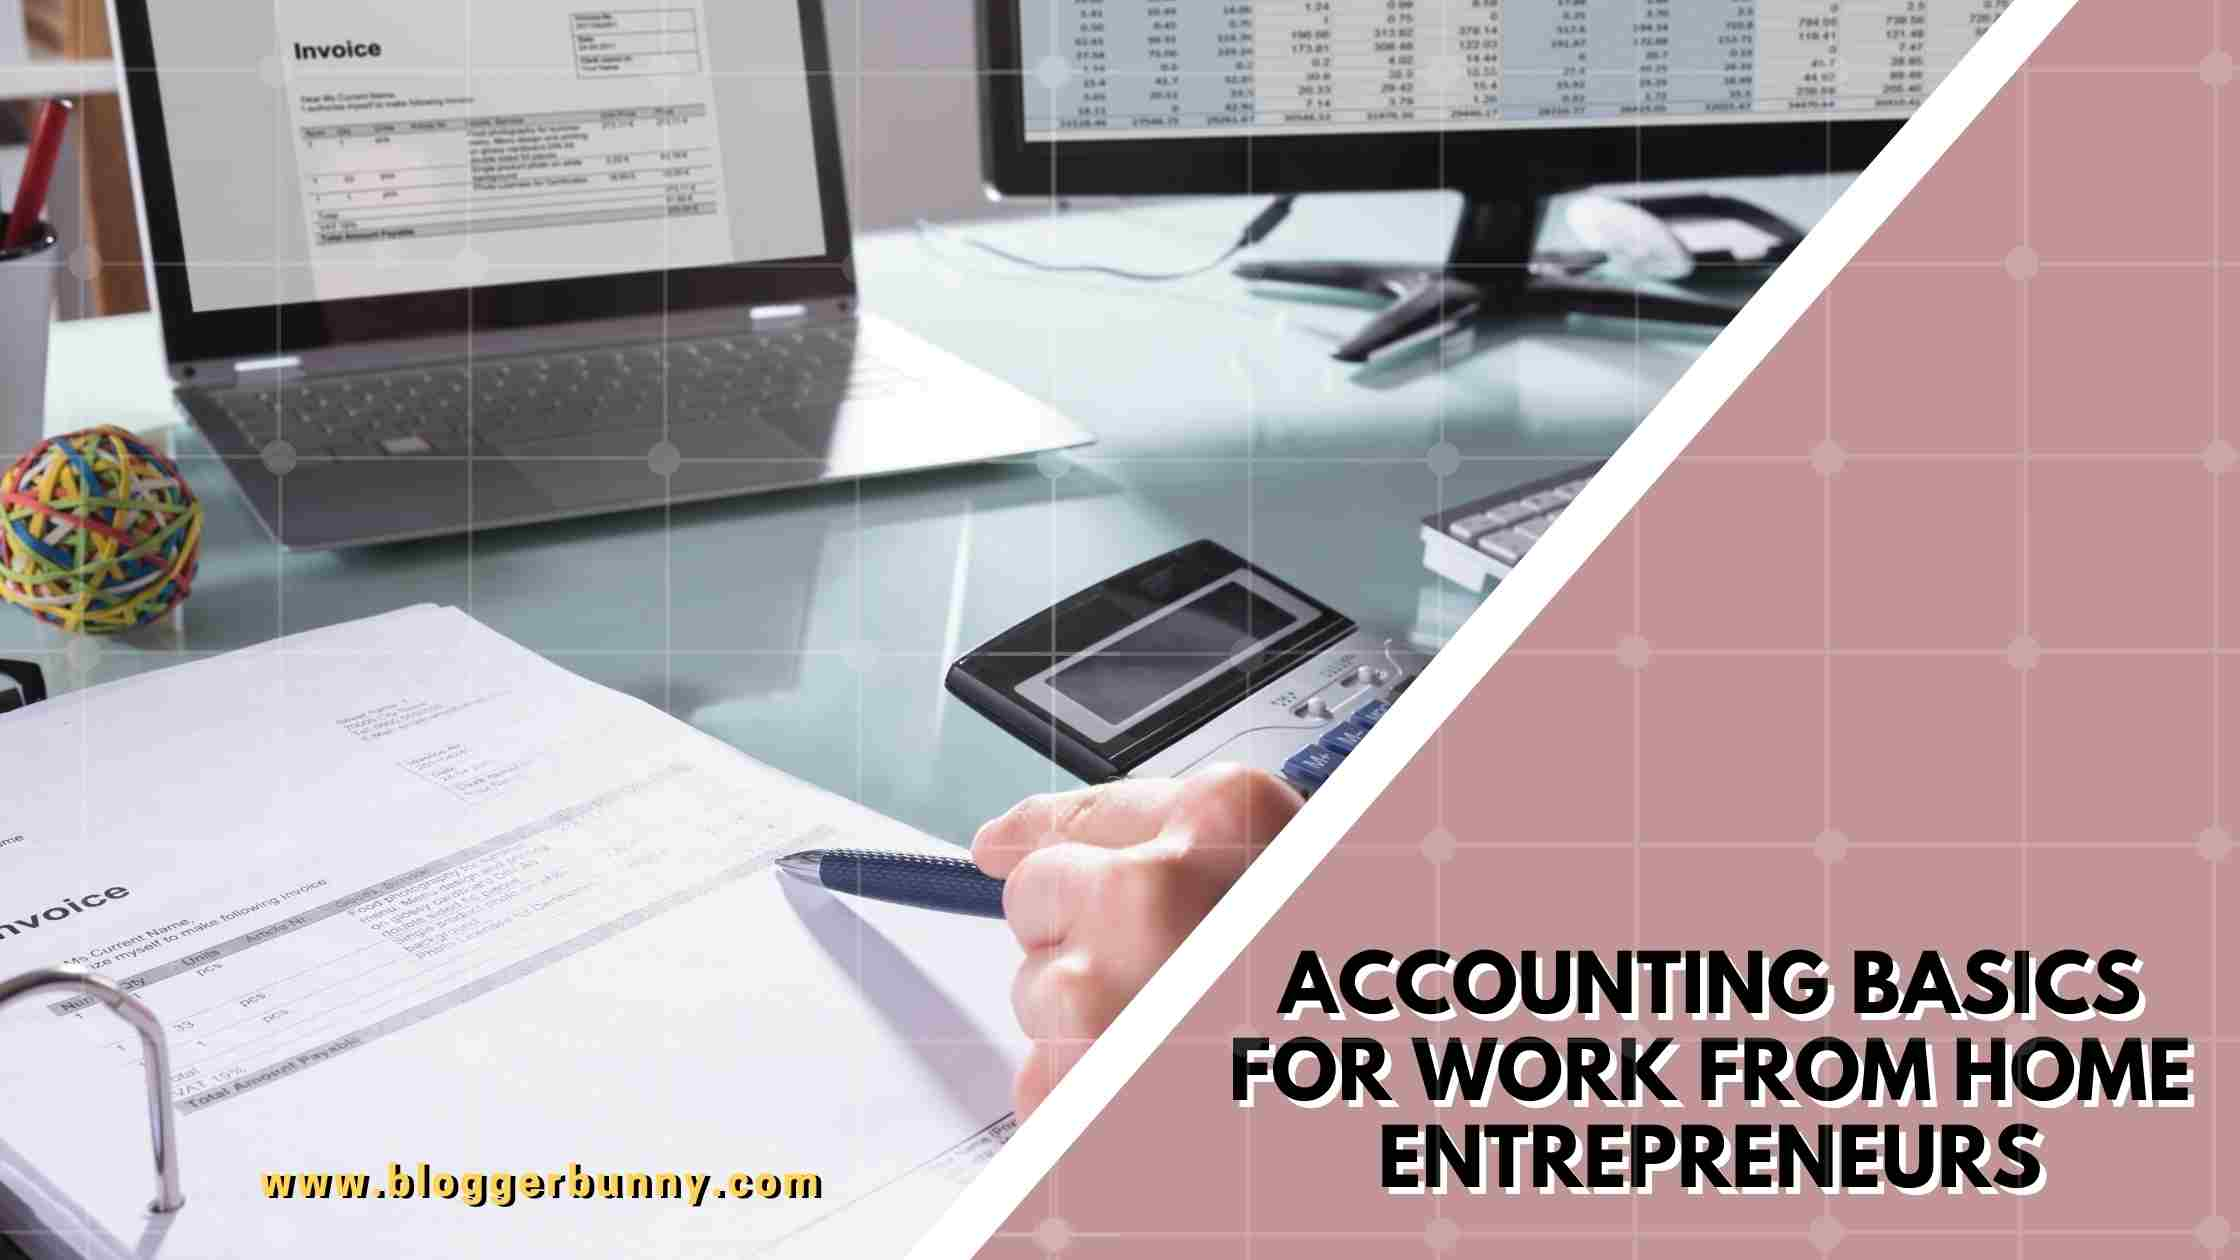 ACCOUNTING BASICS FOR WORK FROM HOME ENTREPRENEURS